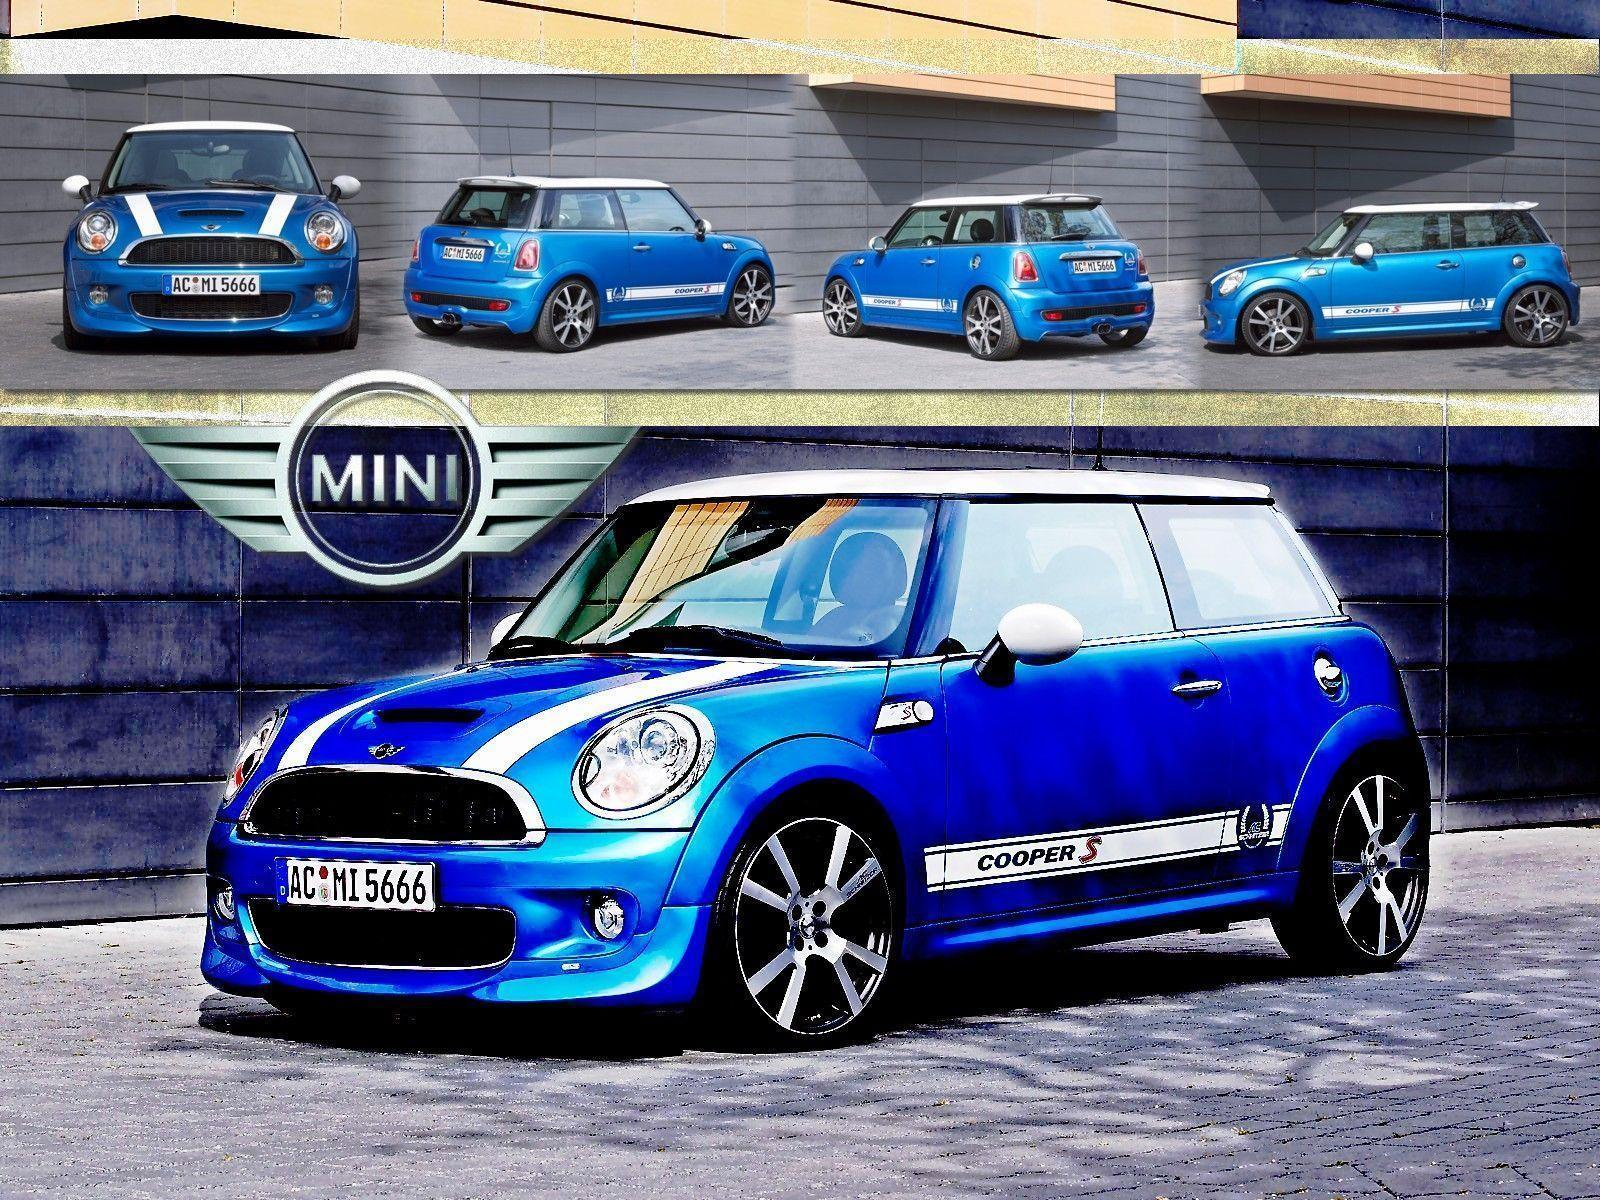 Mini Cooper Wallpapers 22804 Wallpapers HD